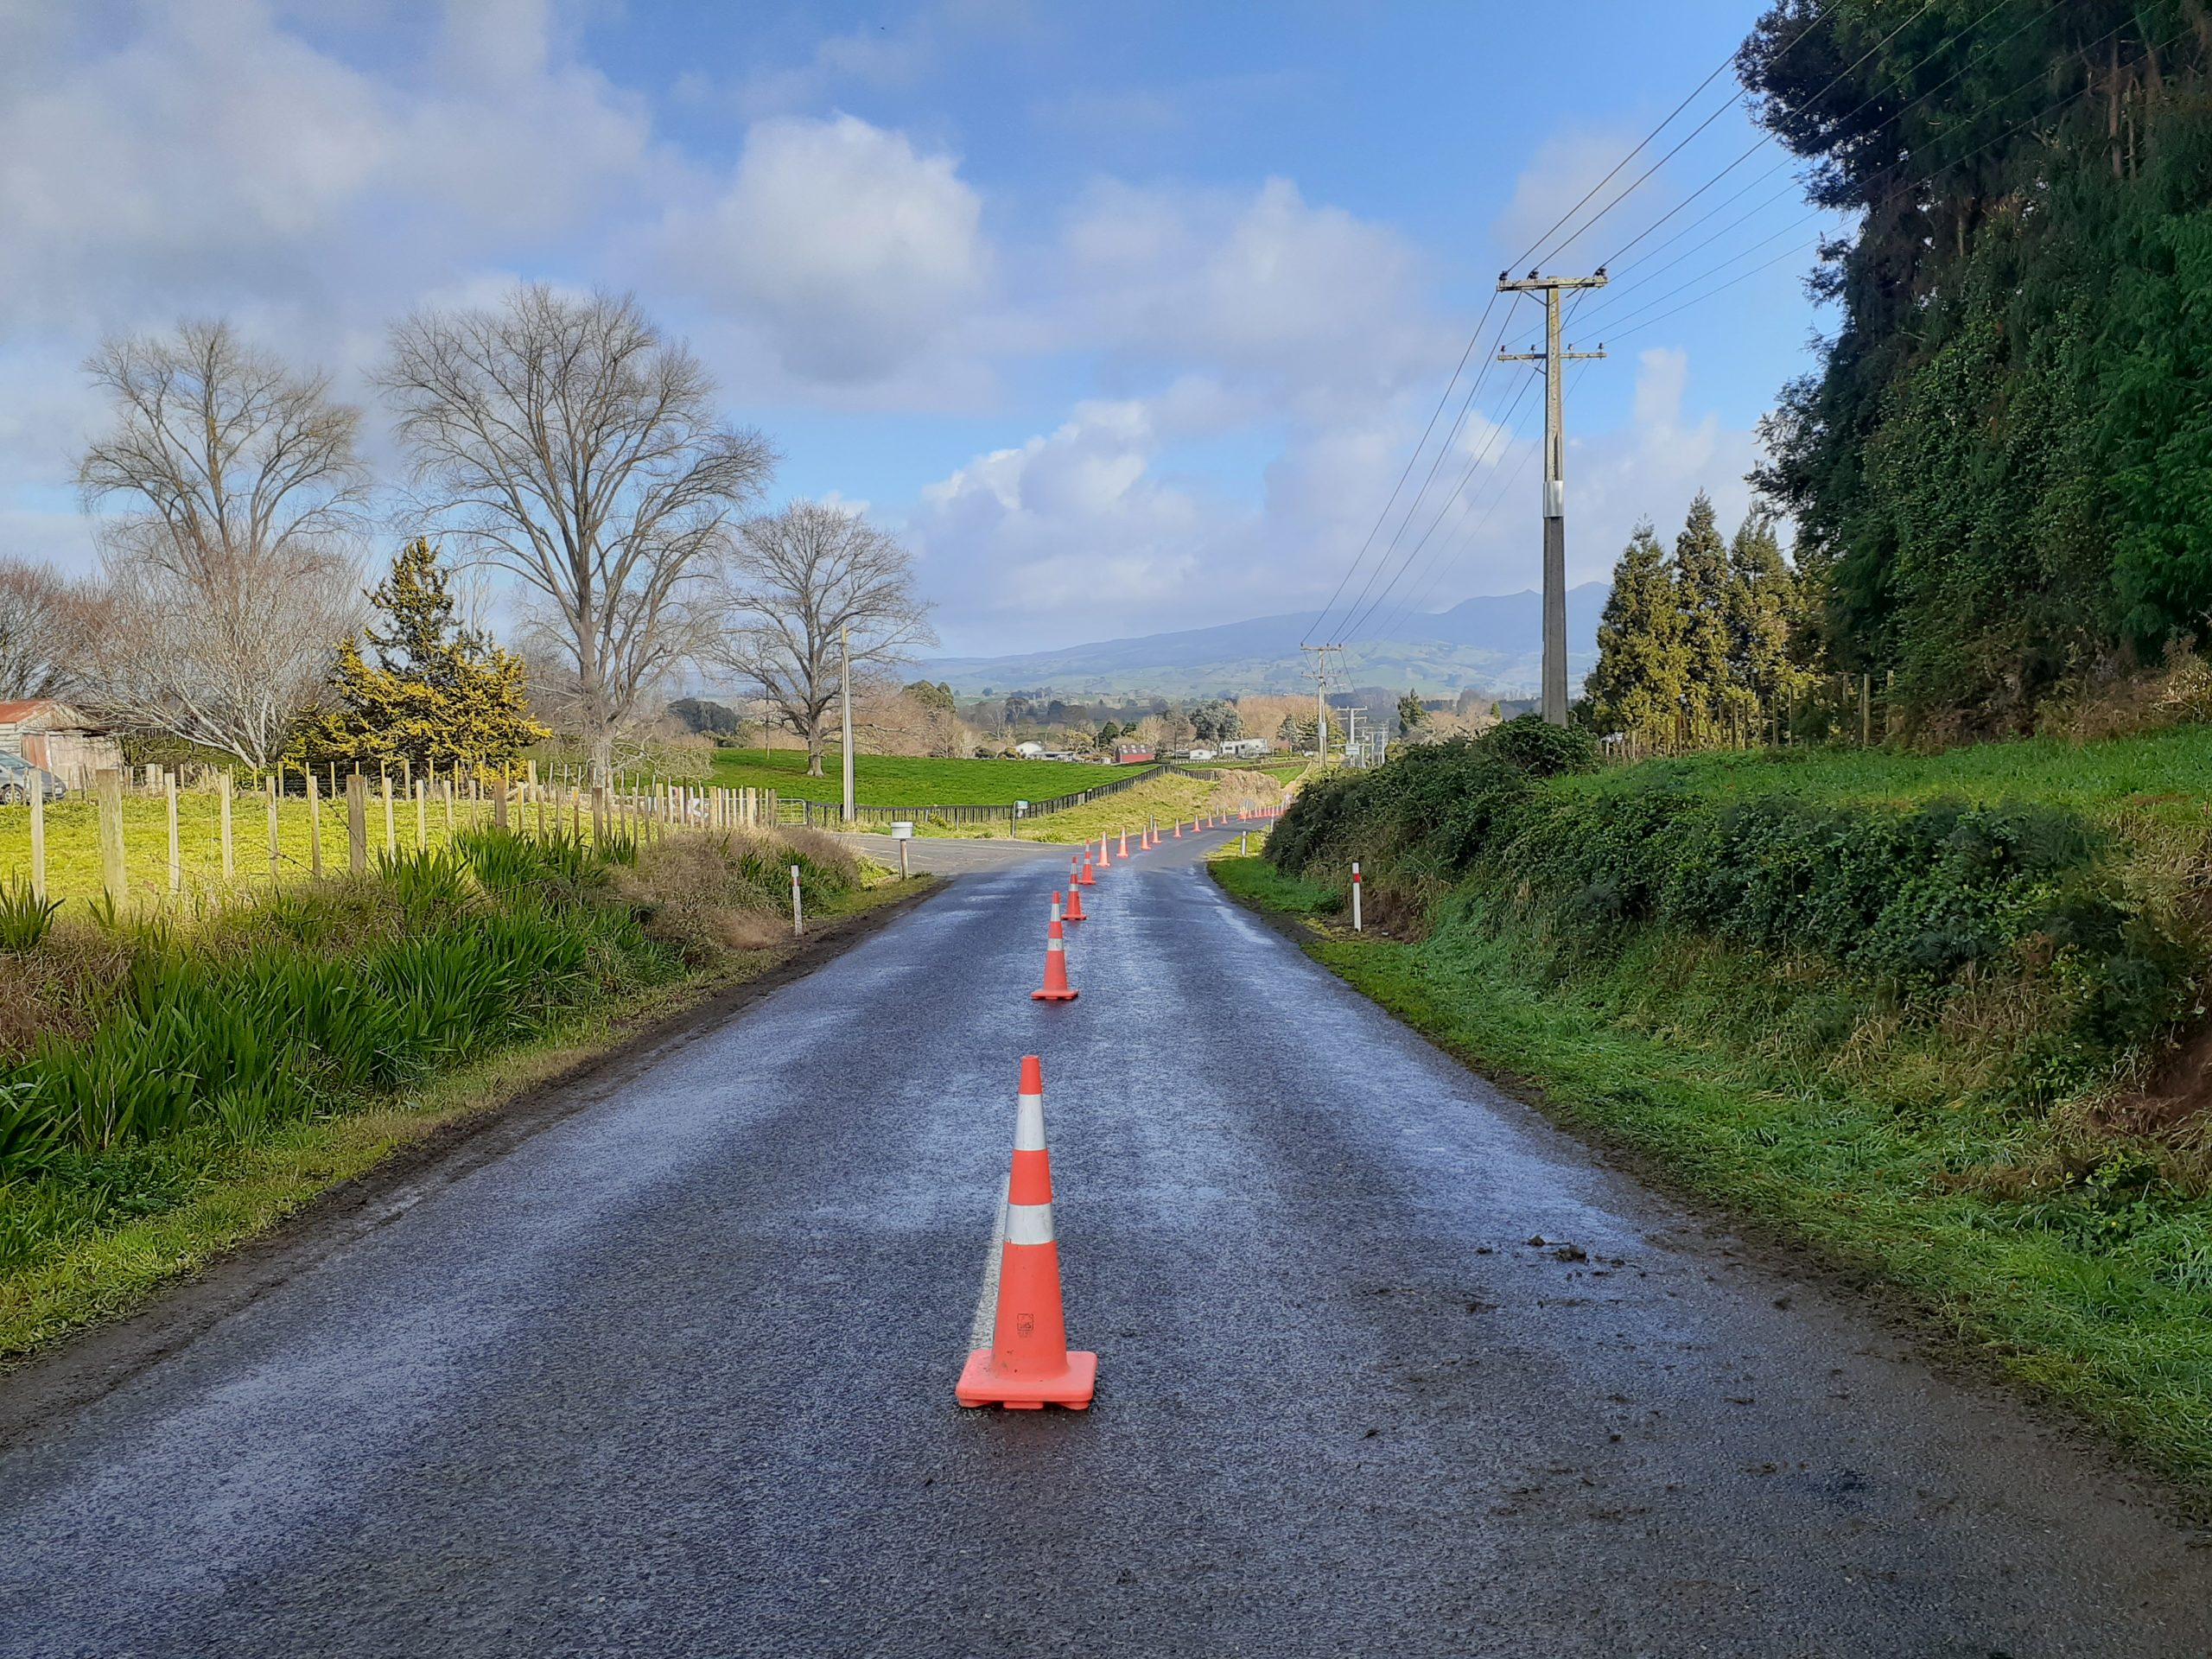 cones, road, traffic management